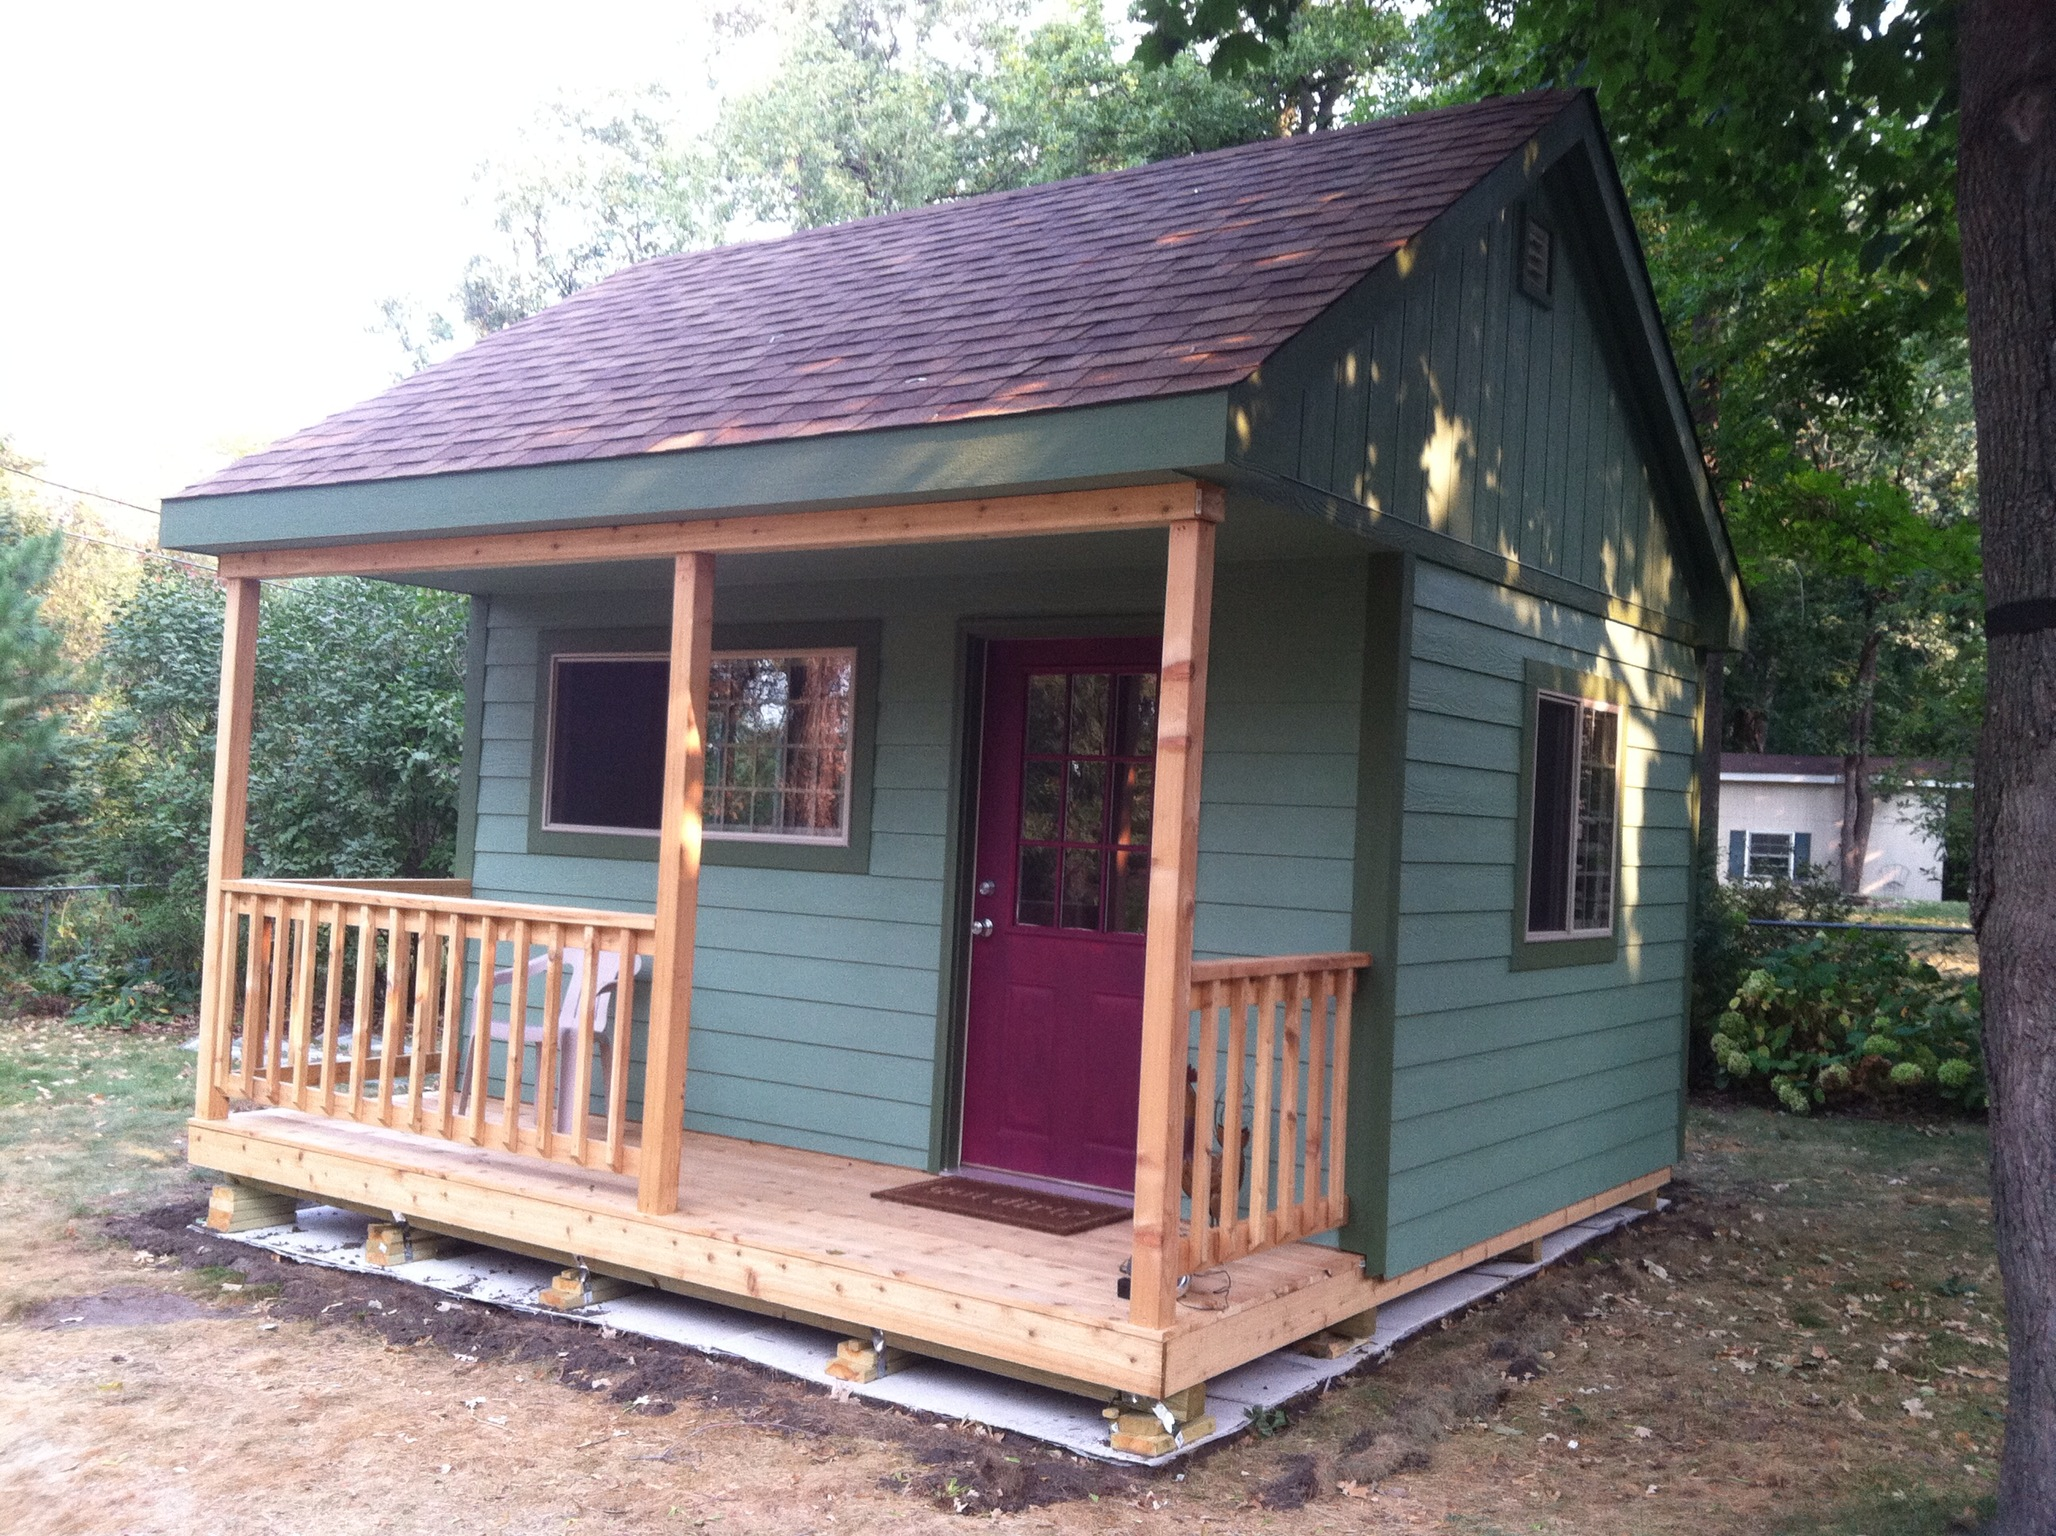 Gable Deluxe Shed with Covered Porch